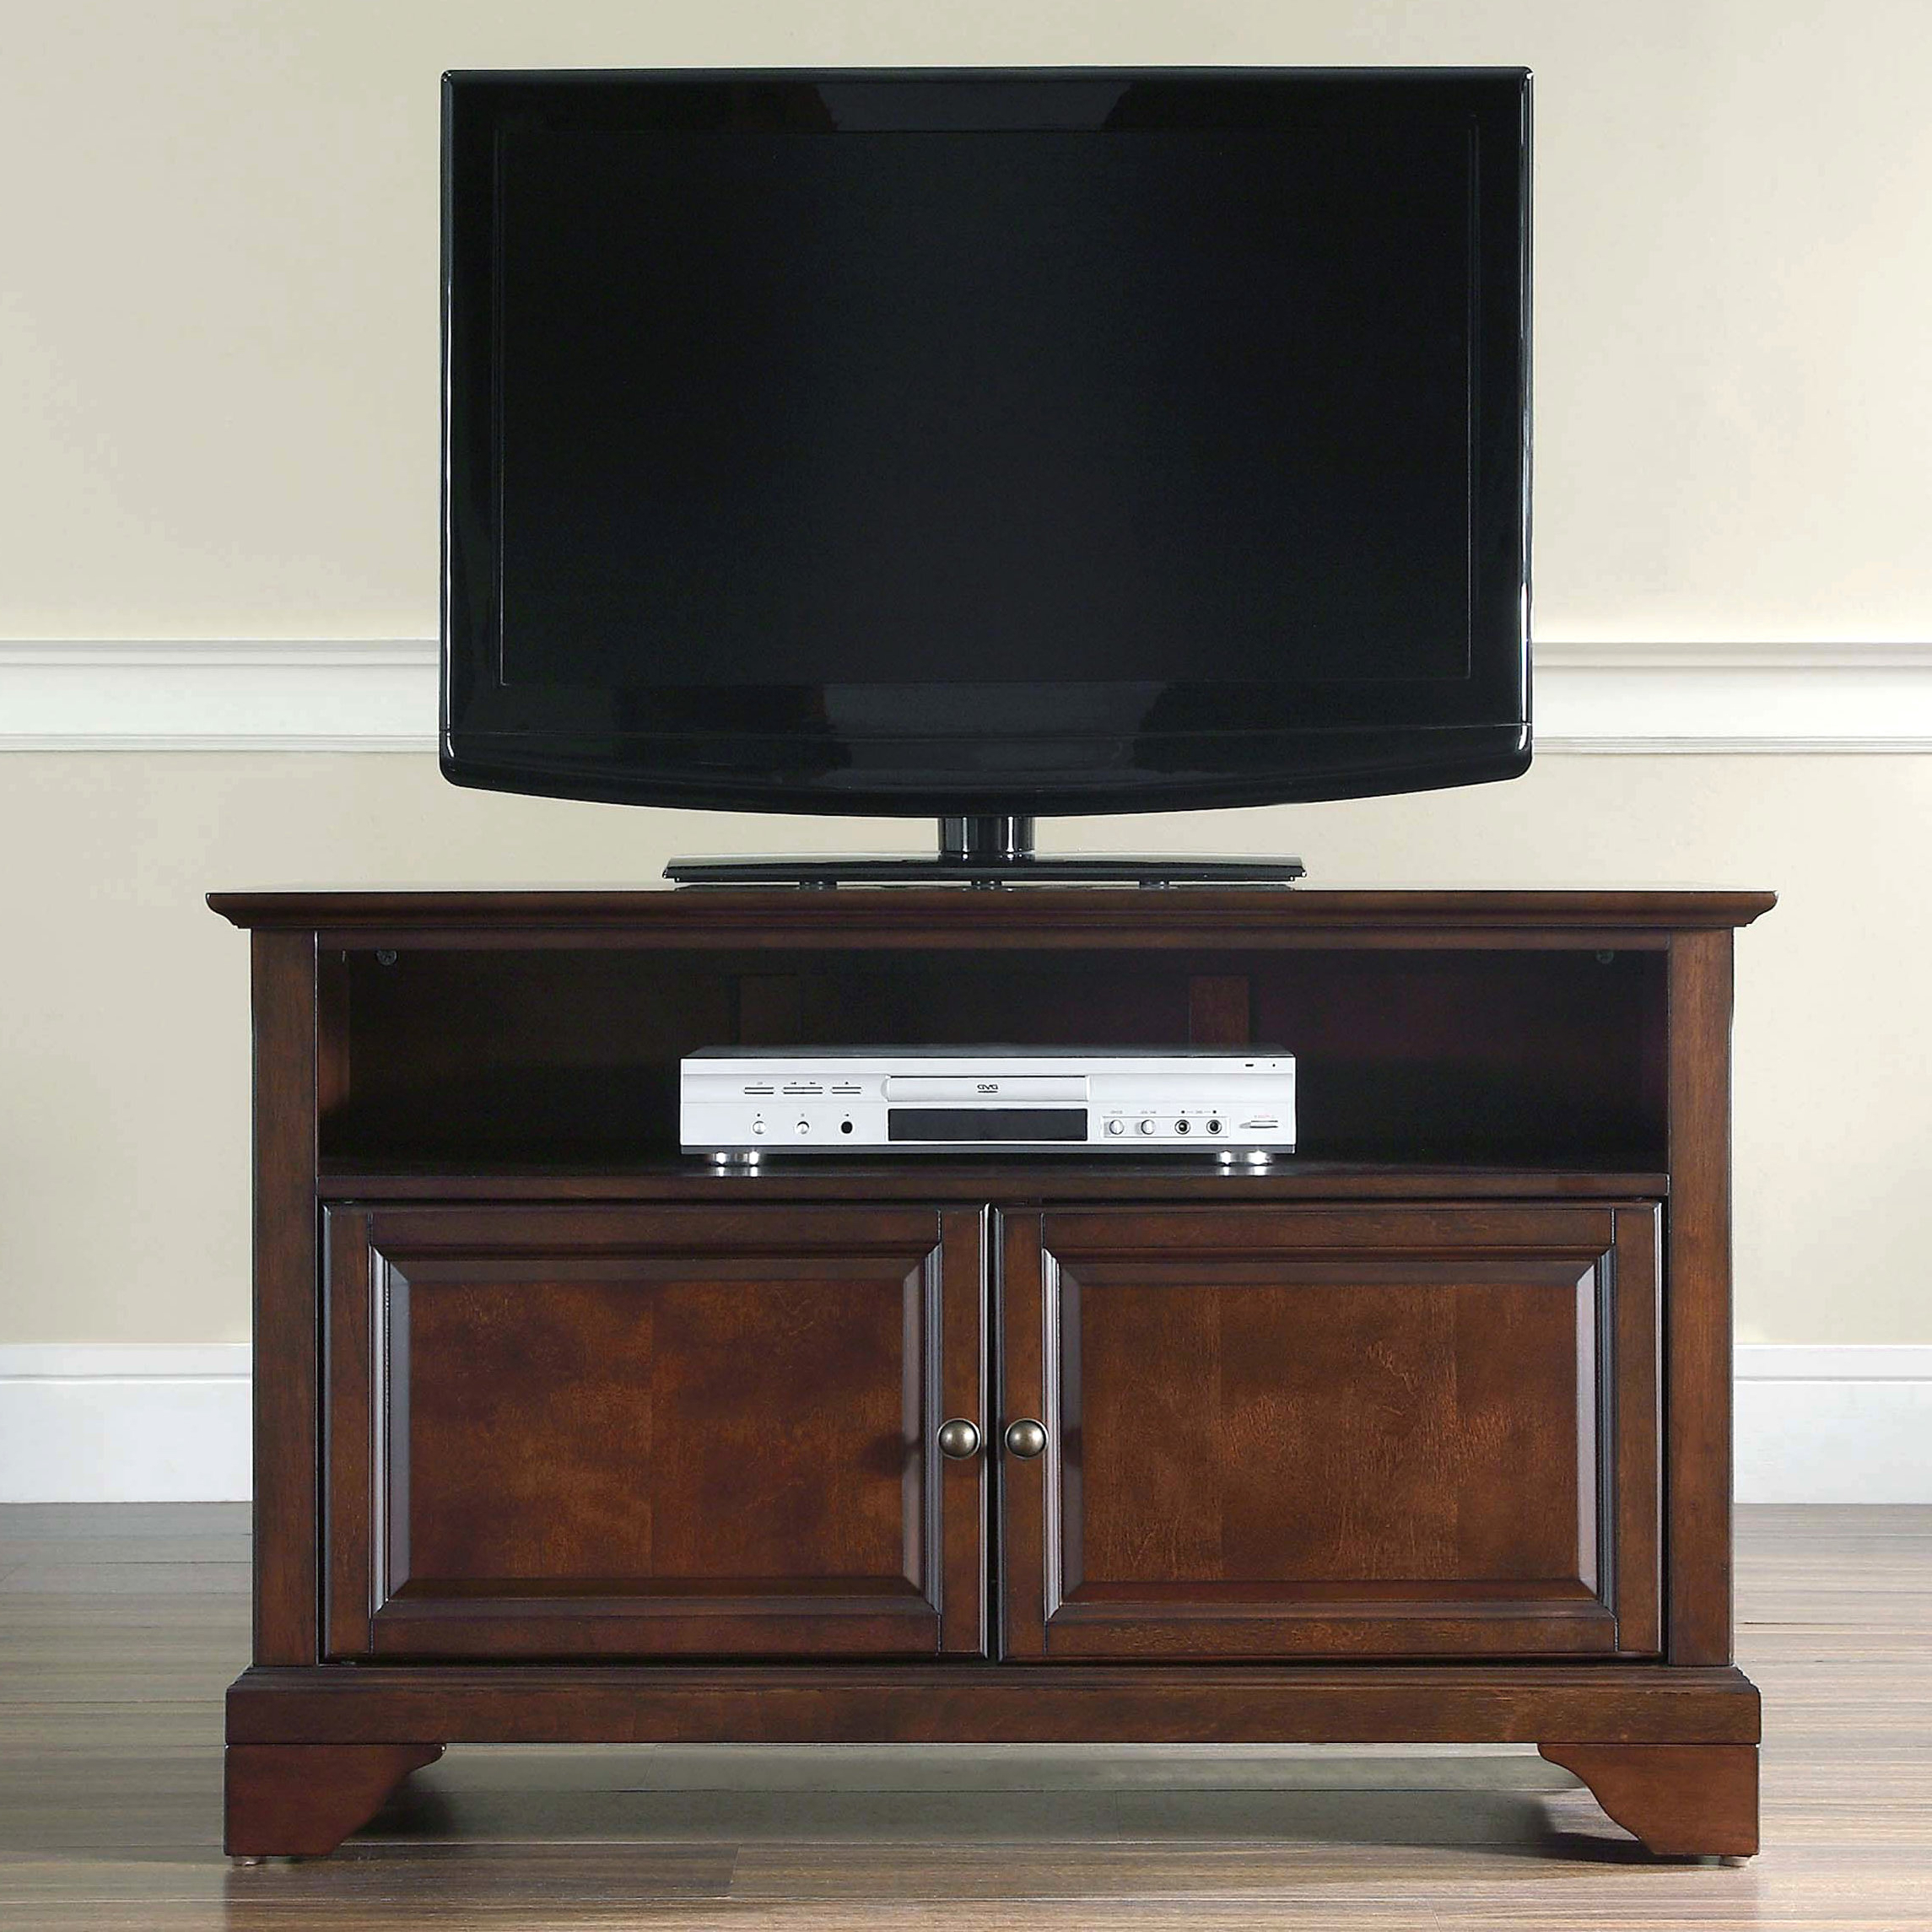 "Trendy Hedon Tv Stand For Tvs Up To 42"" In Ericka Tv Stands For Tvs Up To 42"" (View 3 of 20)"